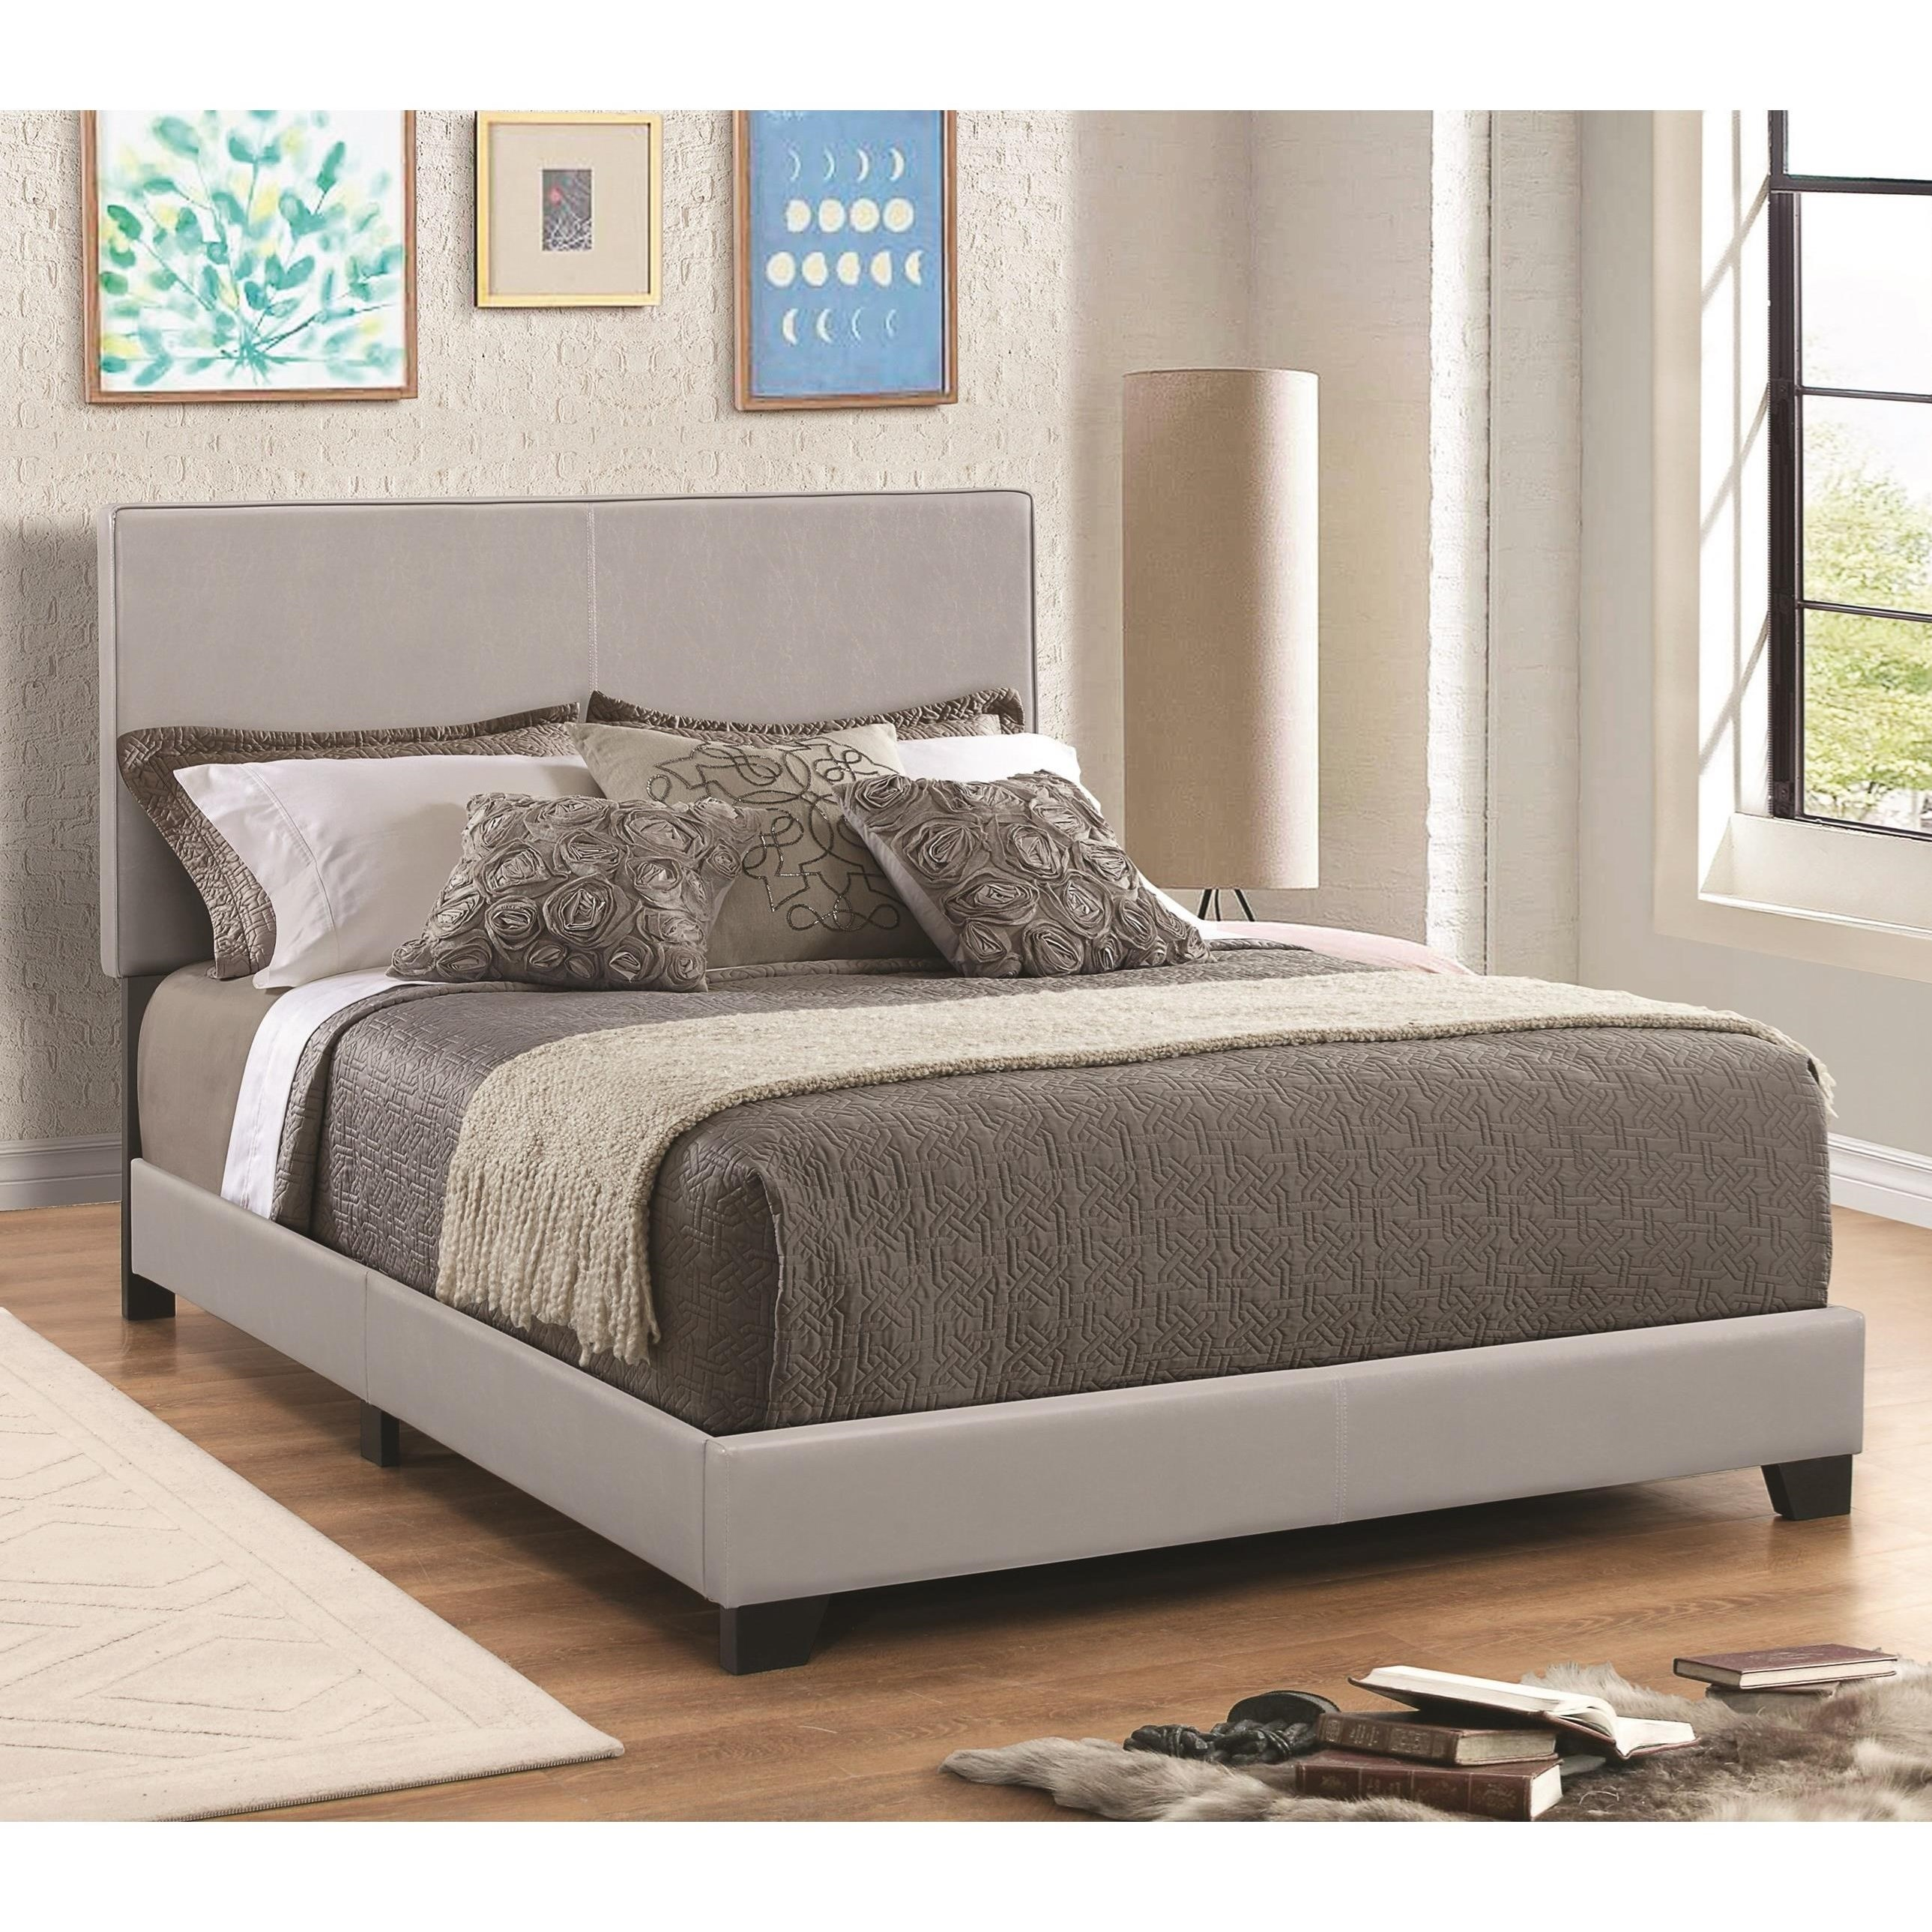 Dorian Grey California King Bed by Coaster at Northeast Factory Direct